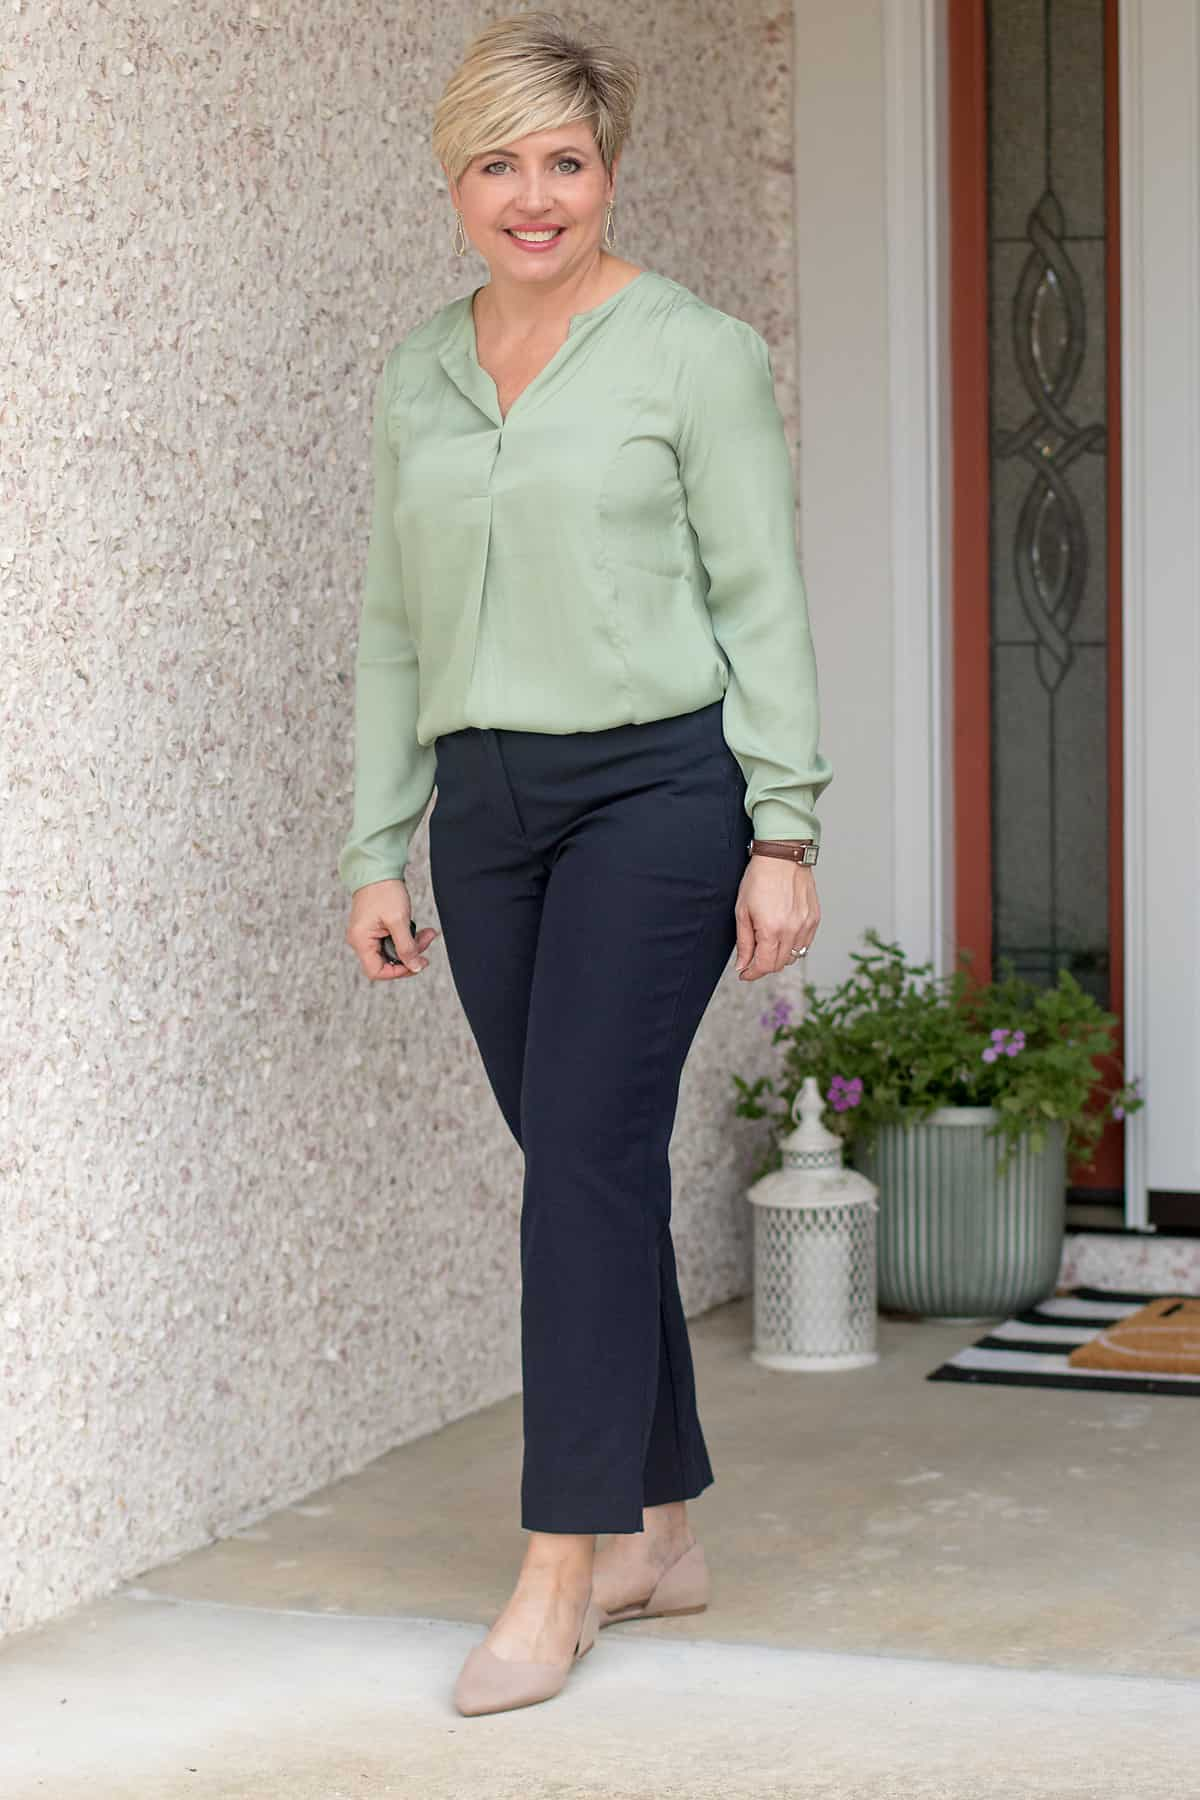 spring 2021 greens ash green sage green popover with navy pants work wear